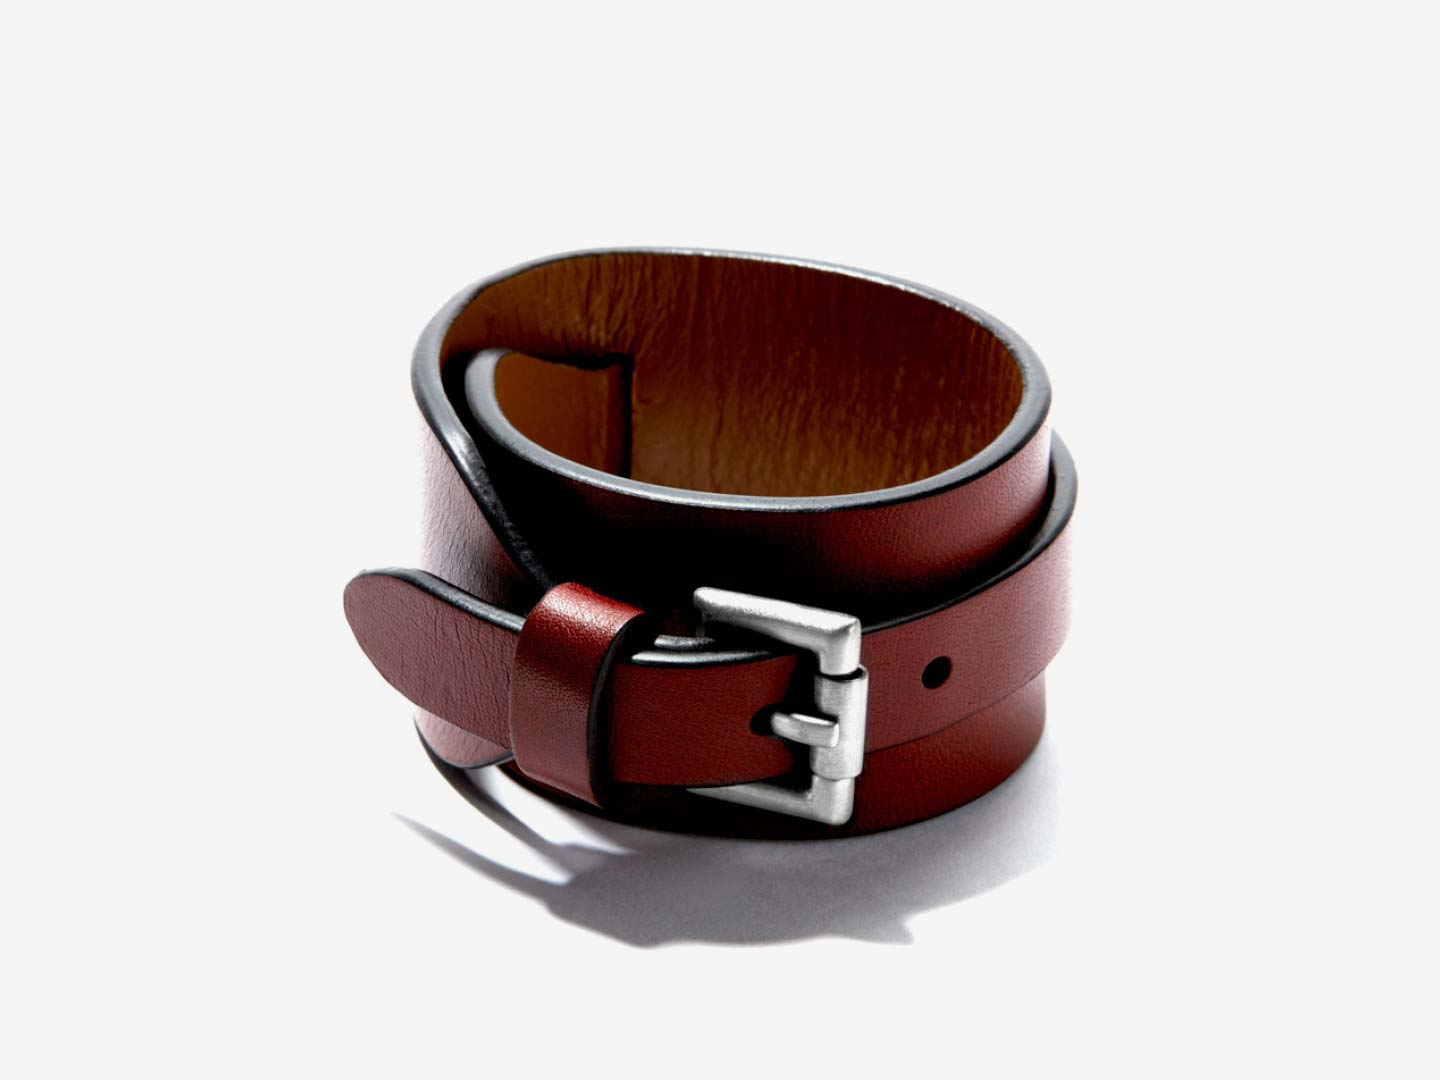 Cordovan butch leather cuff